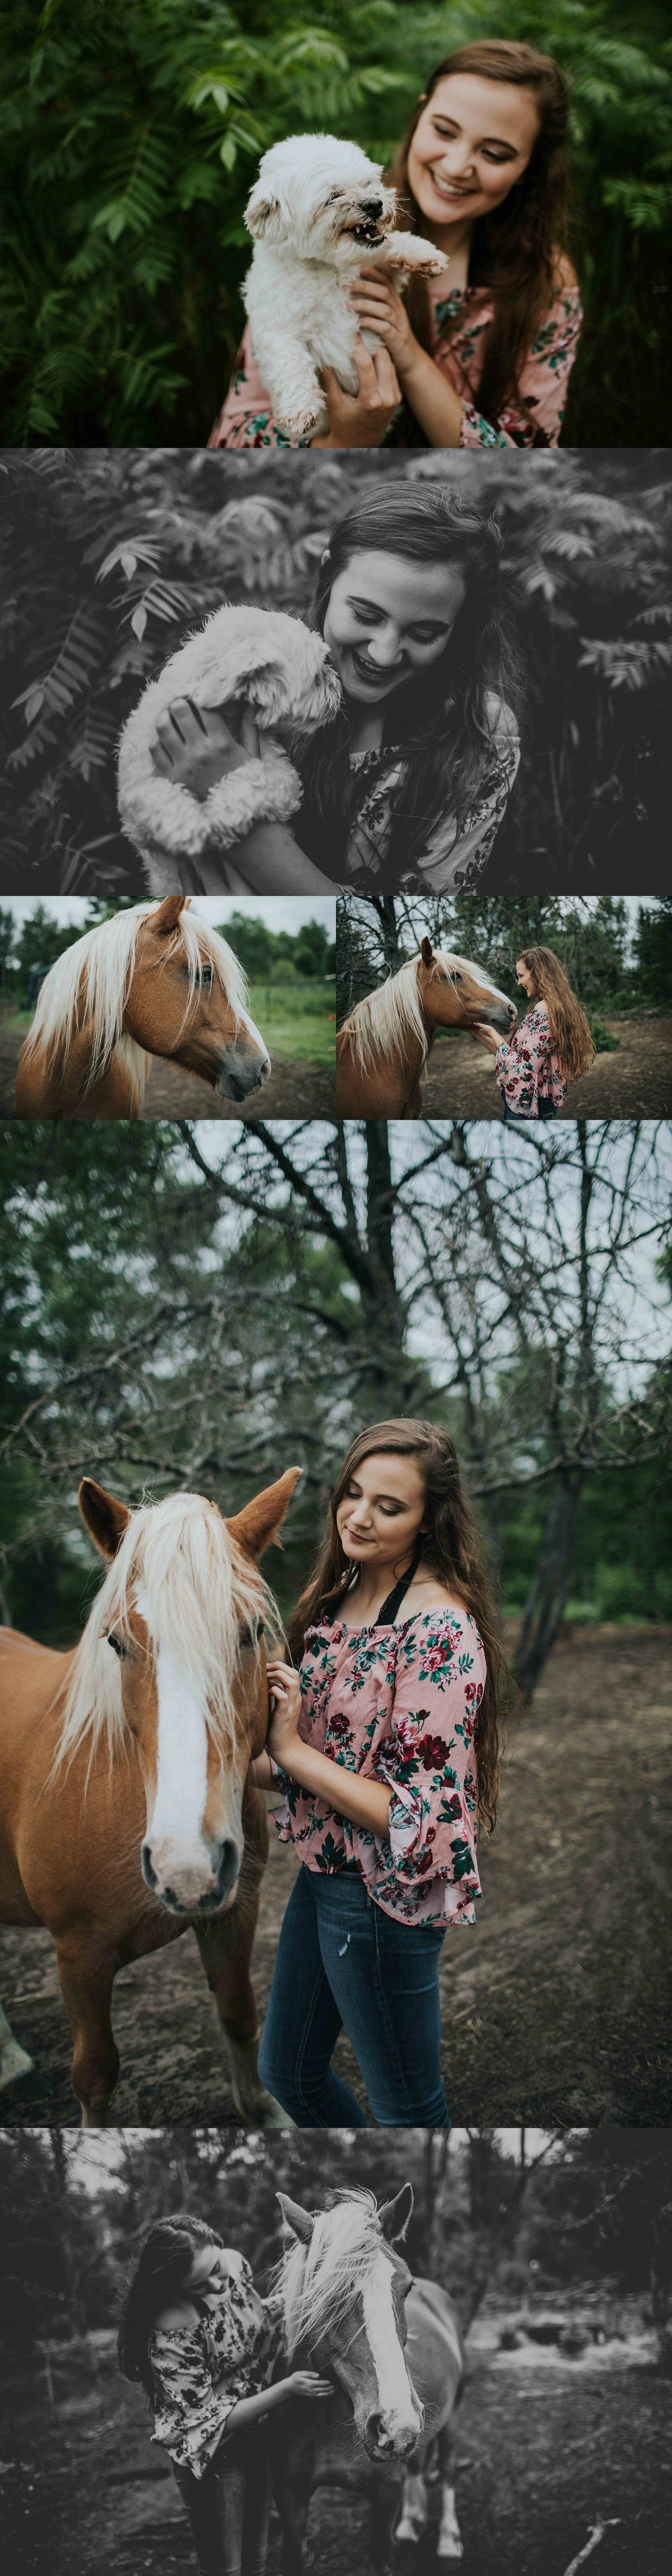 Wisconsin Senior Photographer Wisconsin Rapids Madison Chloe Ann Photography Senior Pictures with dogs and horses